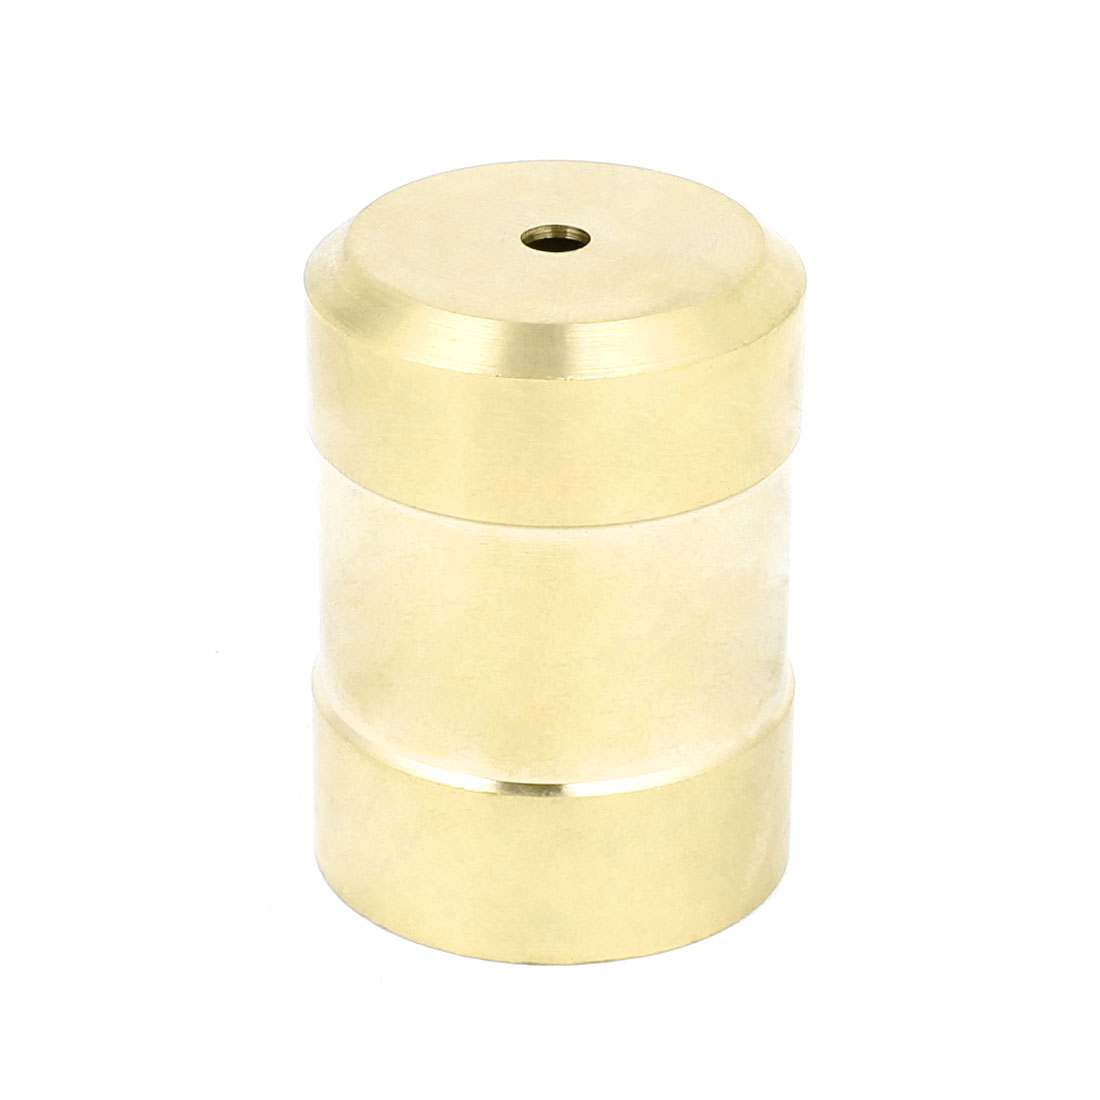 Cooling Dust Cleaning 24mm Female Thread Water Mist Spray Head Nozzle Brass Tone